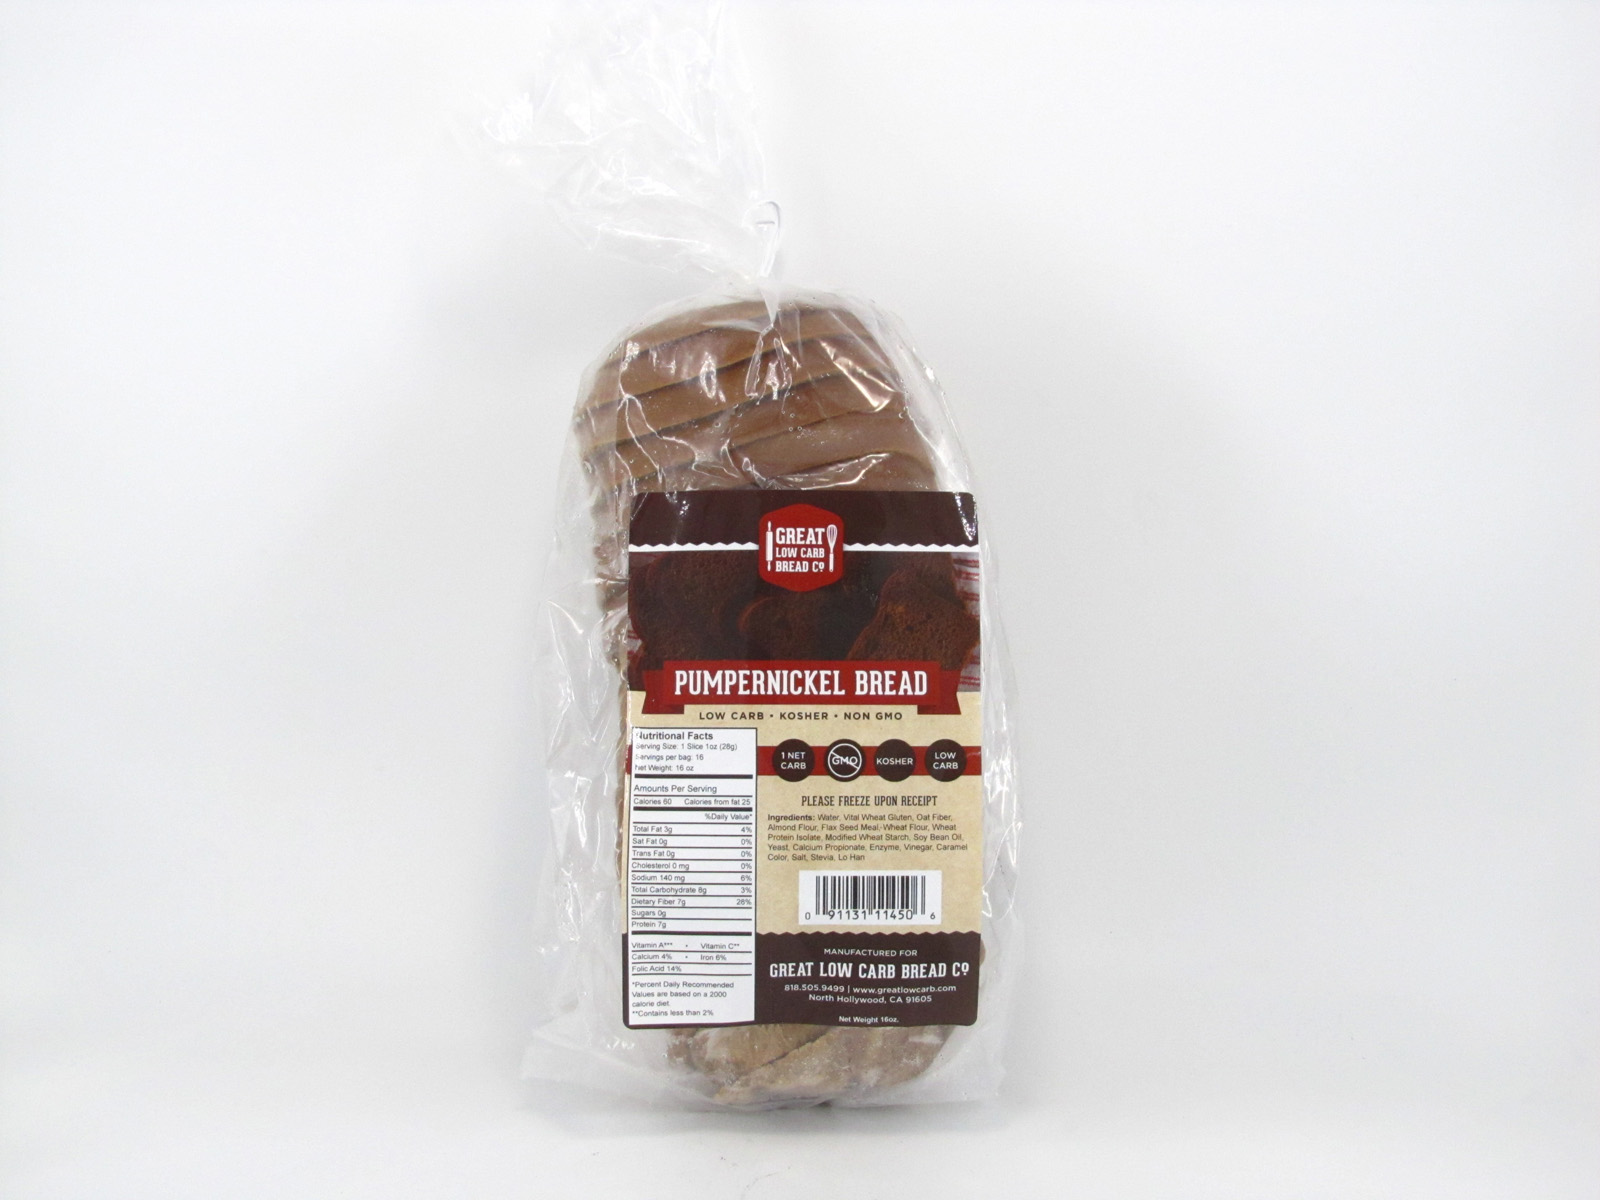 Great Low Carb Bread - Pumpernickel - front view